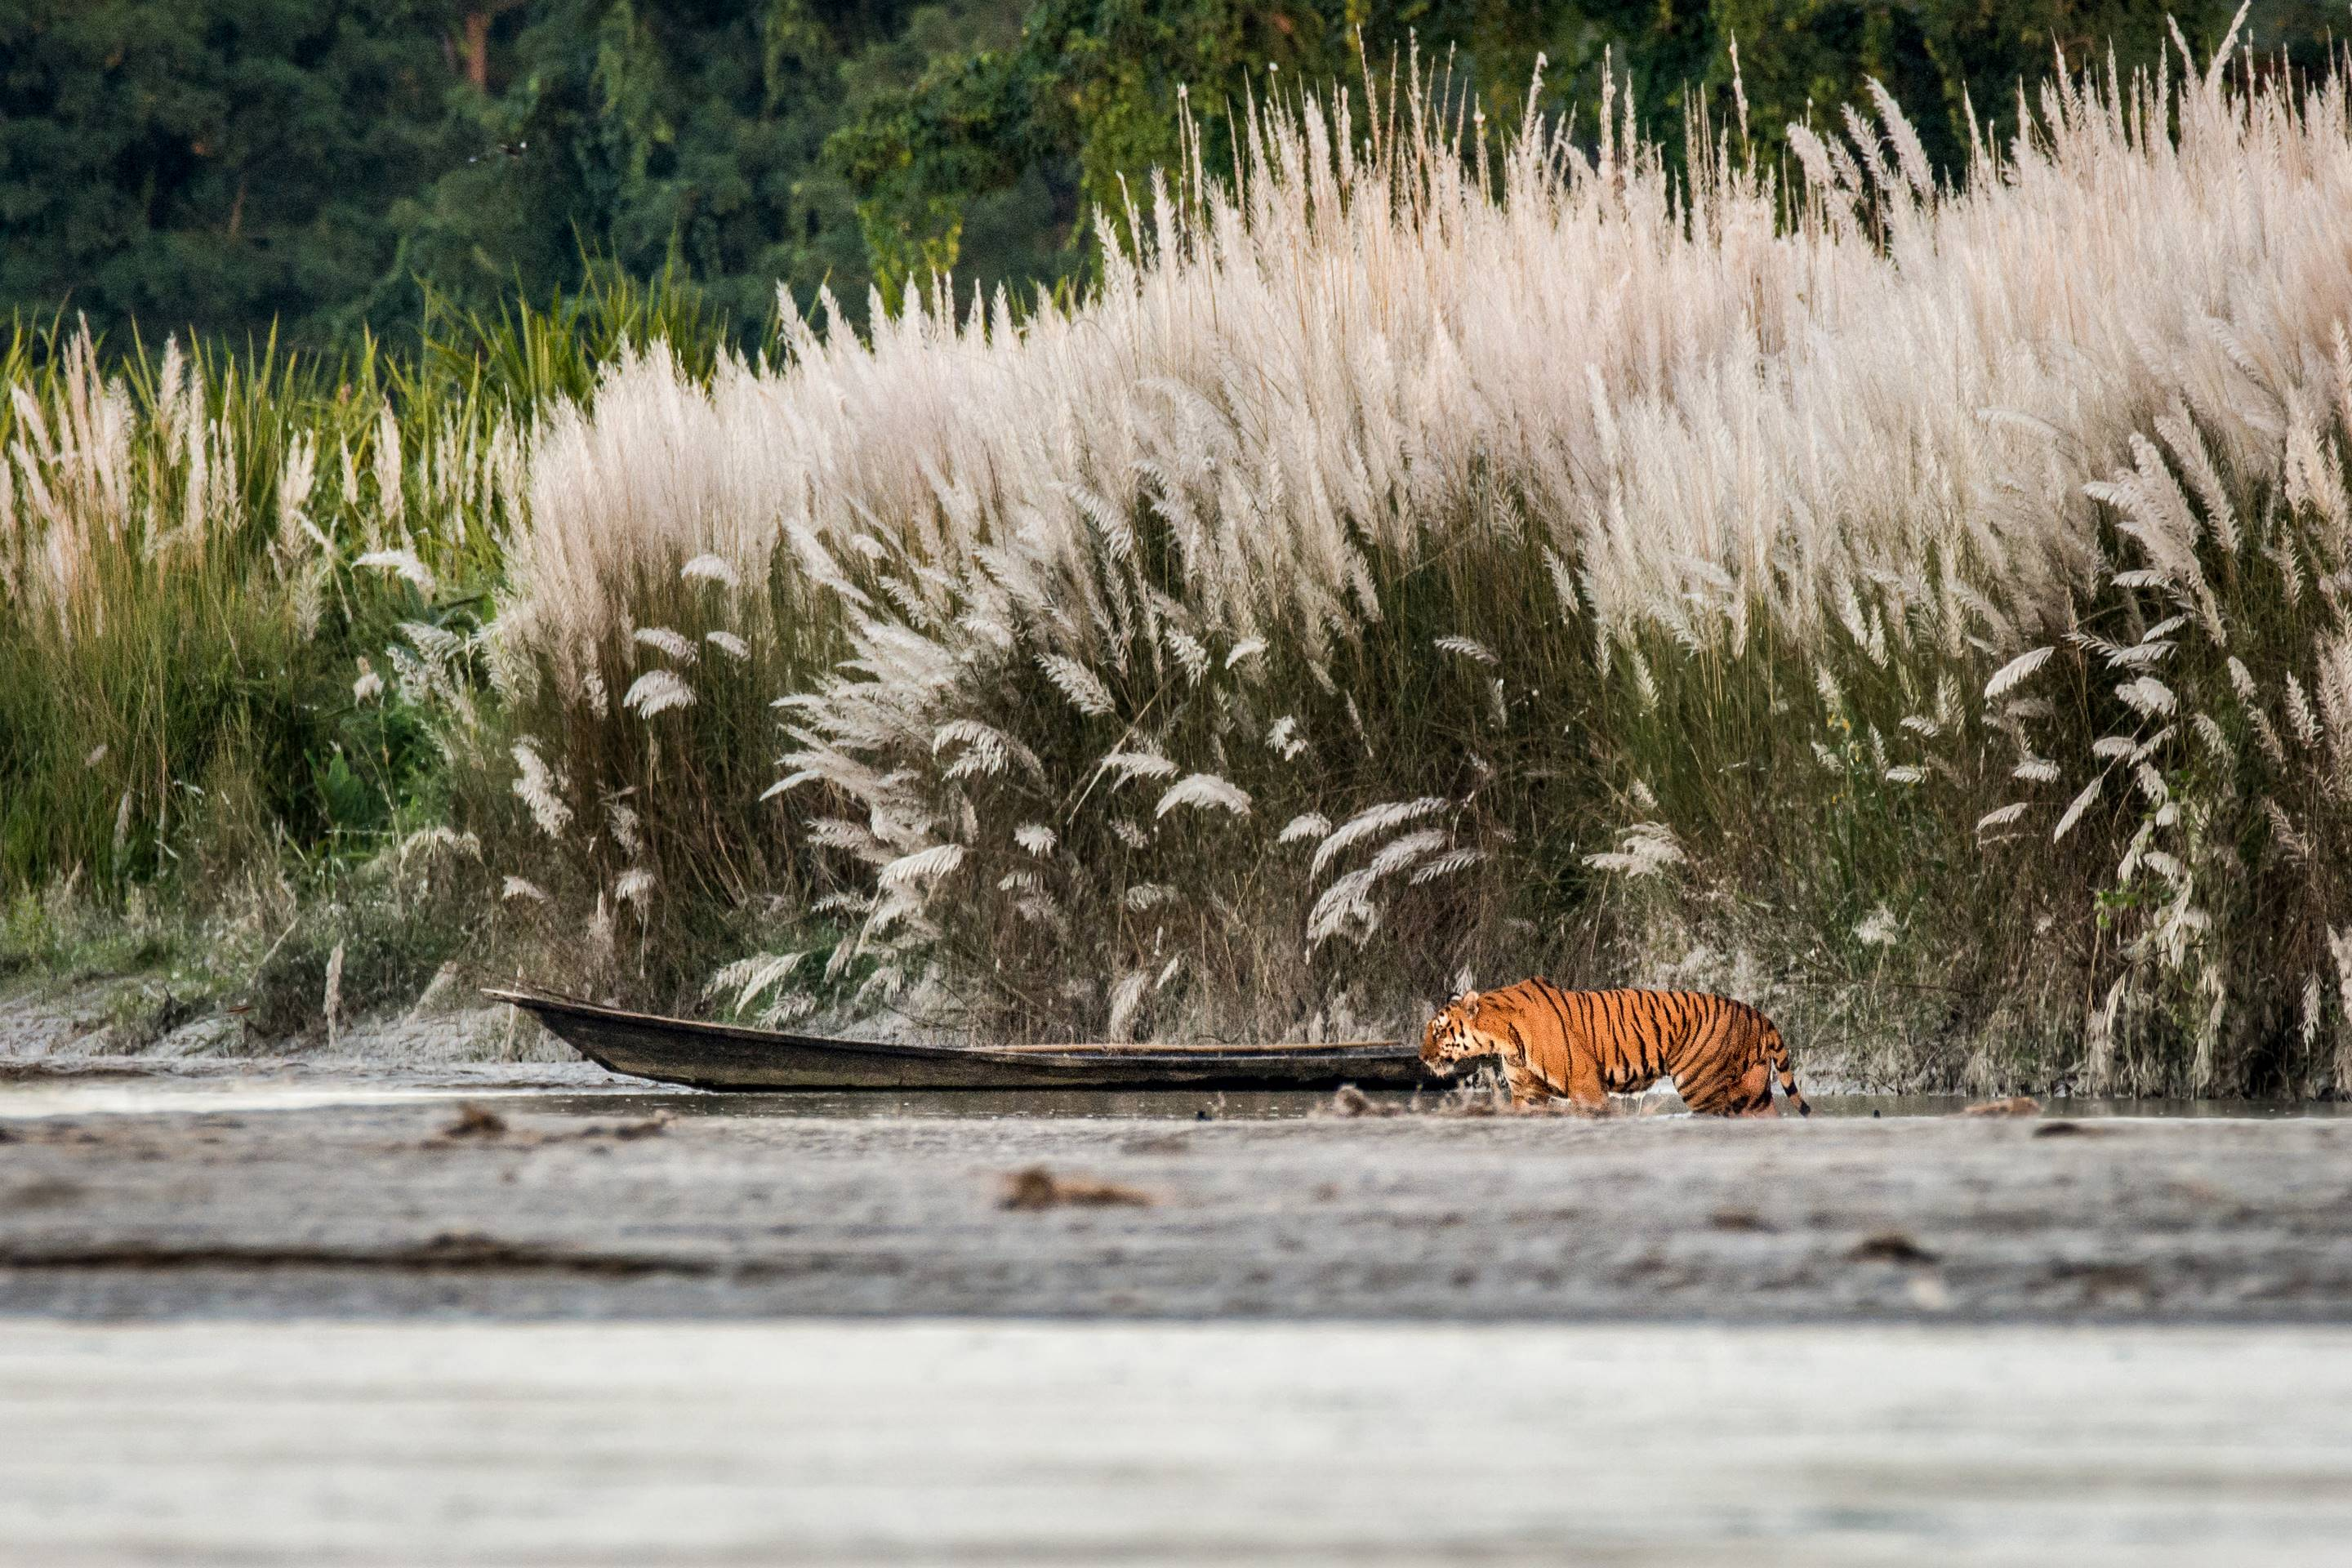 According to a census conducted in 2017, Kaziranga has the highest density of tigers in the country. However, spotting one of this elusive creatures in the tall grass is rare and a matter of chance.  Photo: Nejib Ahmed